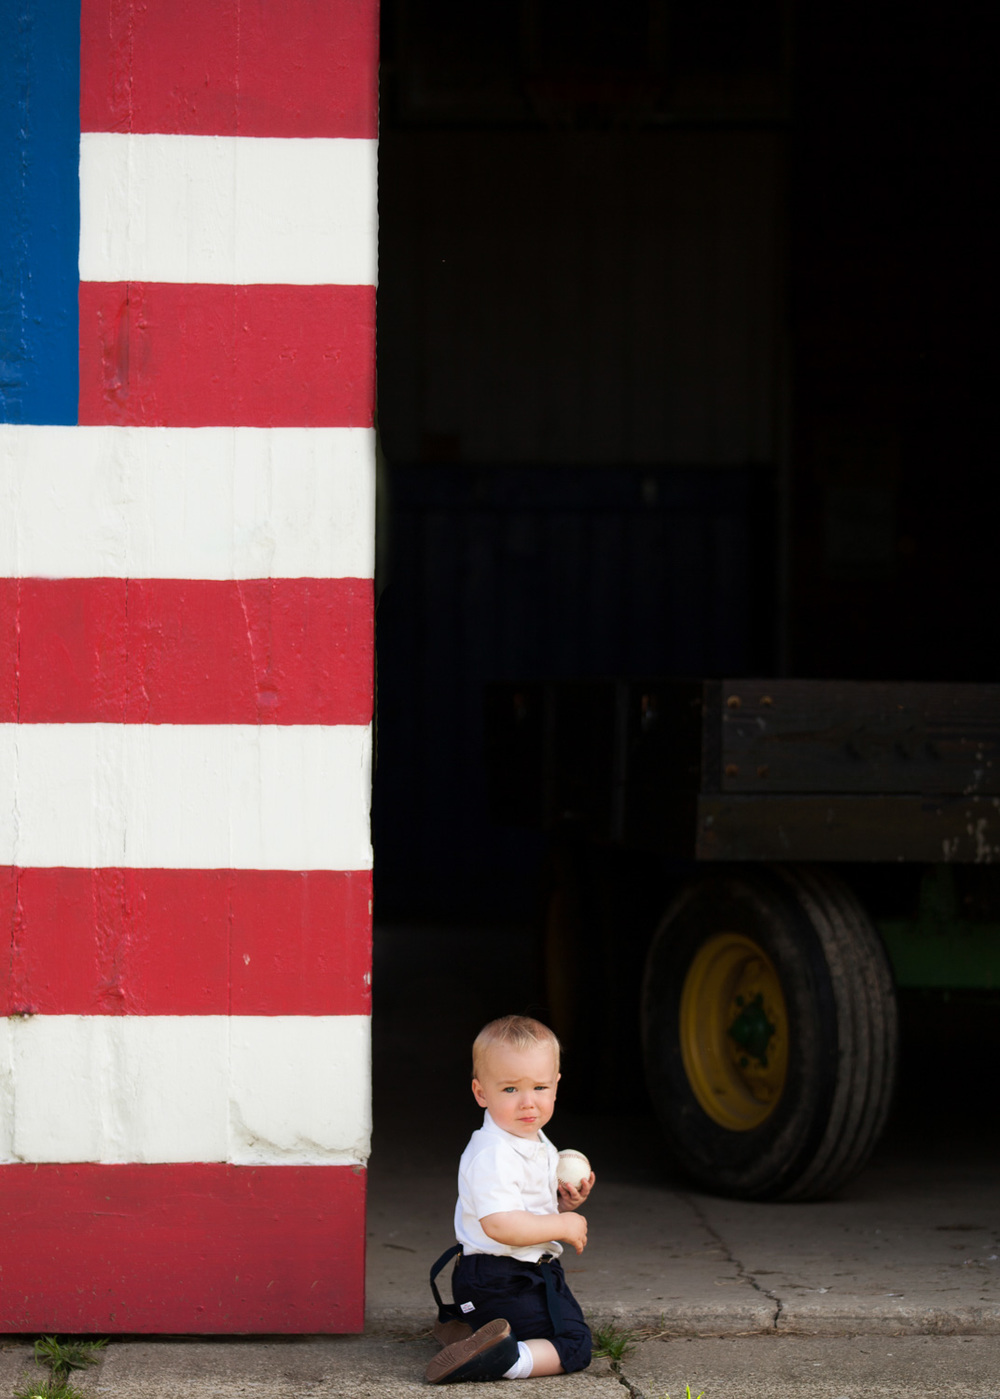 baby-photography-boy-baseball-american-flag-barn.jpg